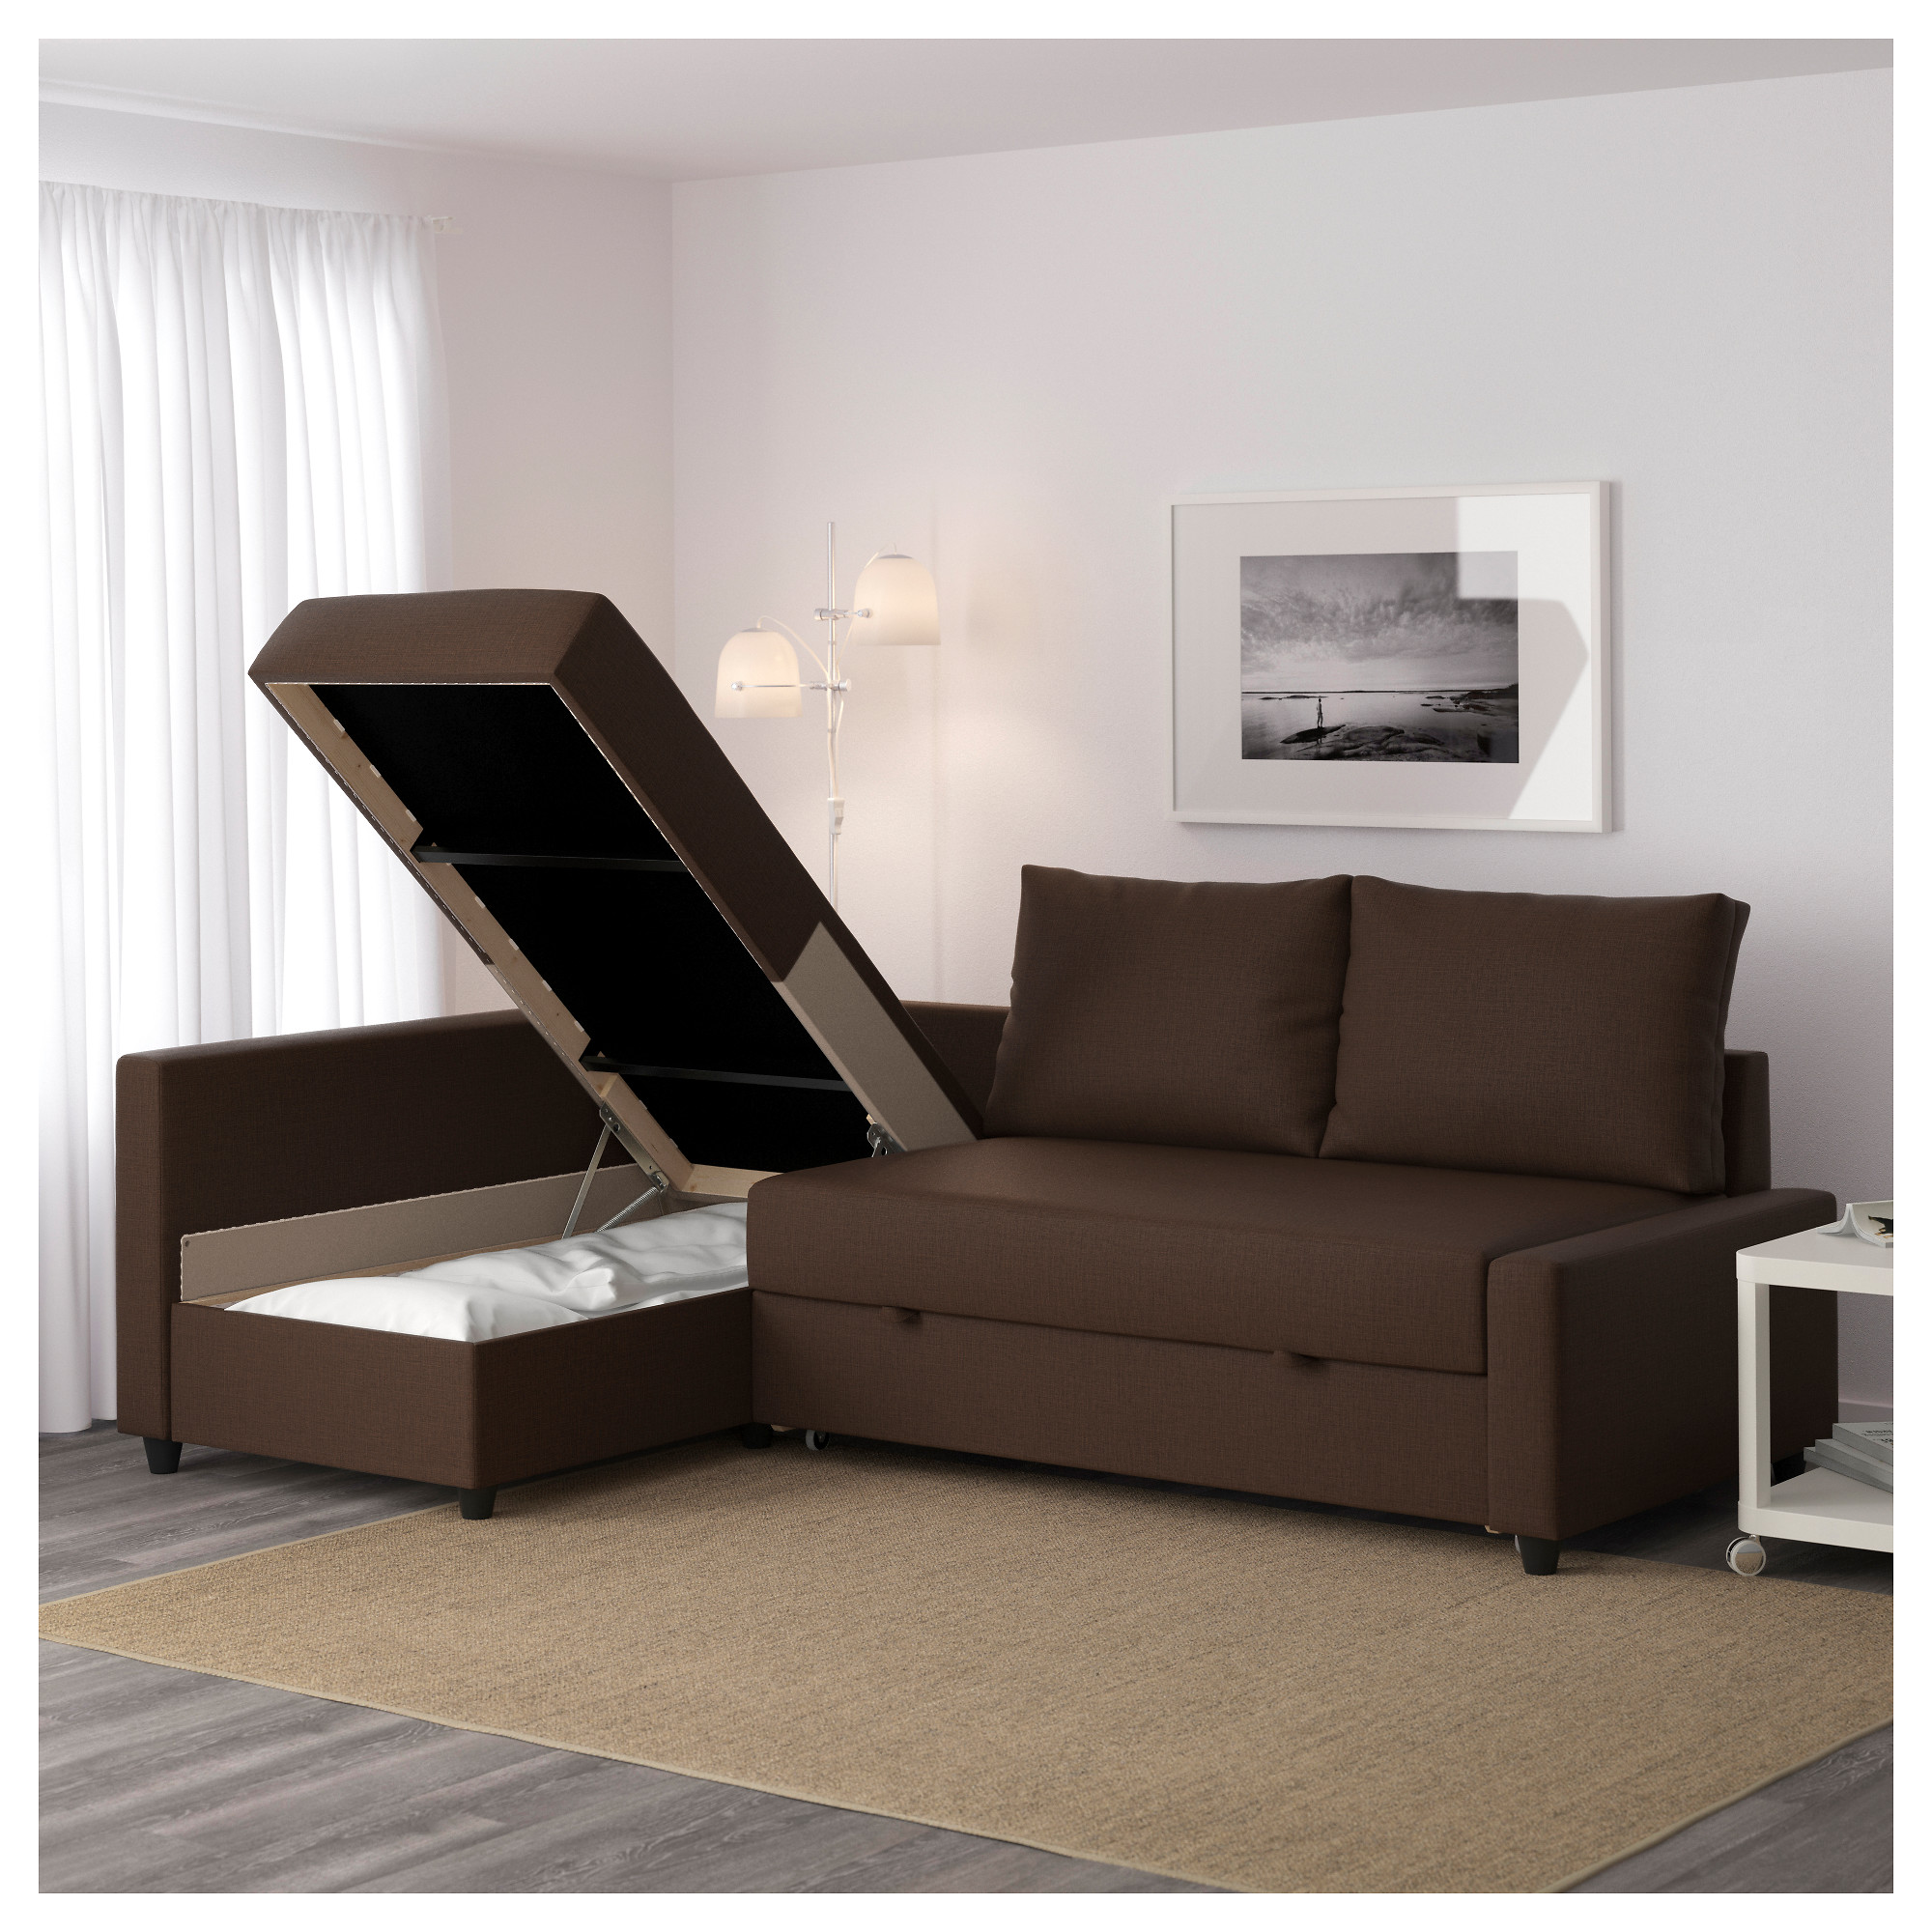 FRIHETEN Sleeper Sectional3 Seat W Storage